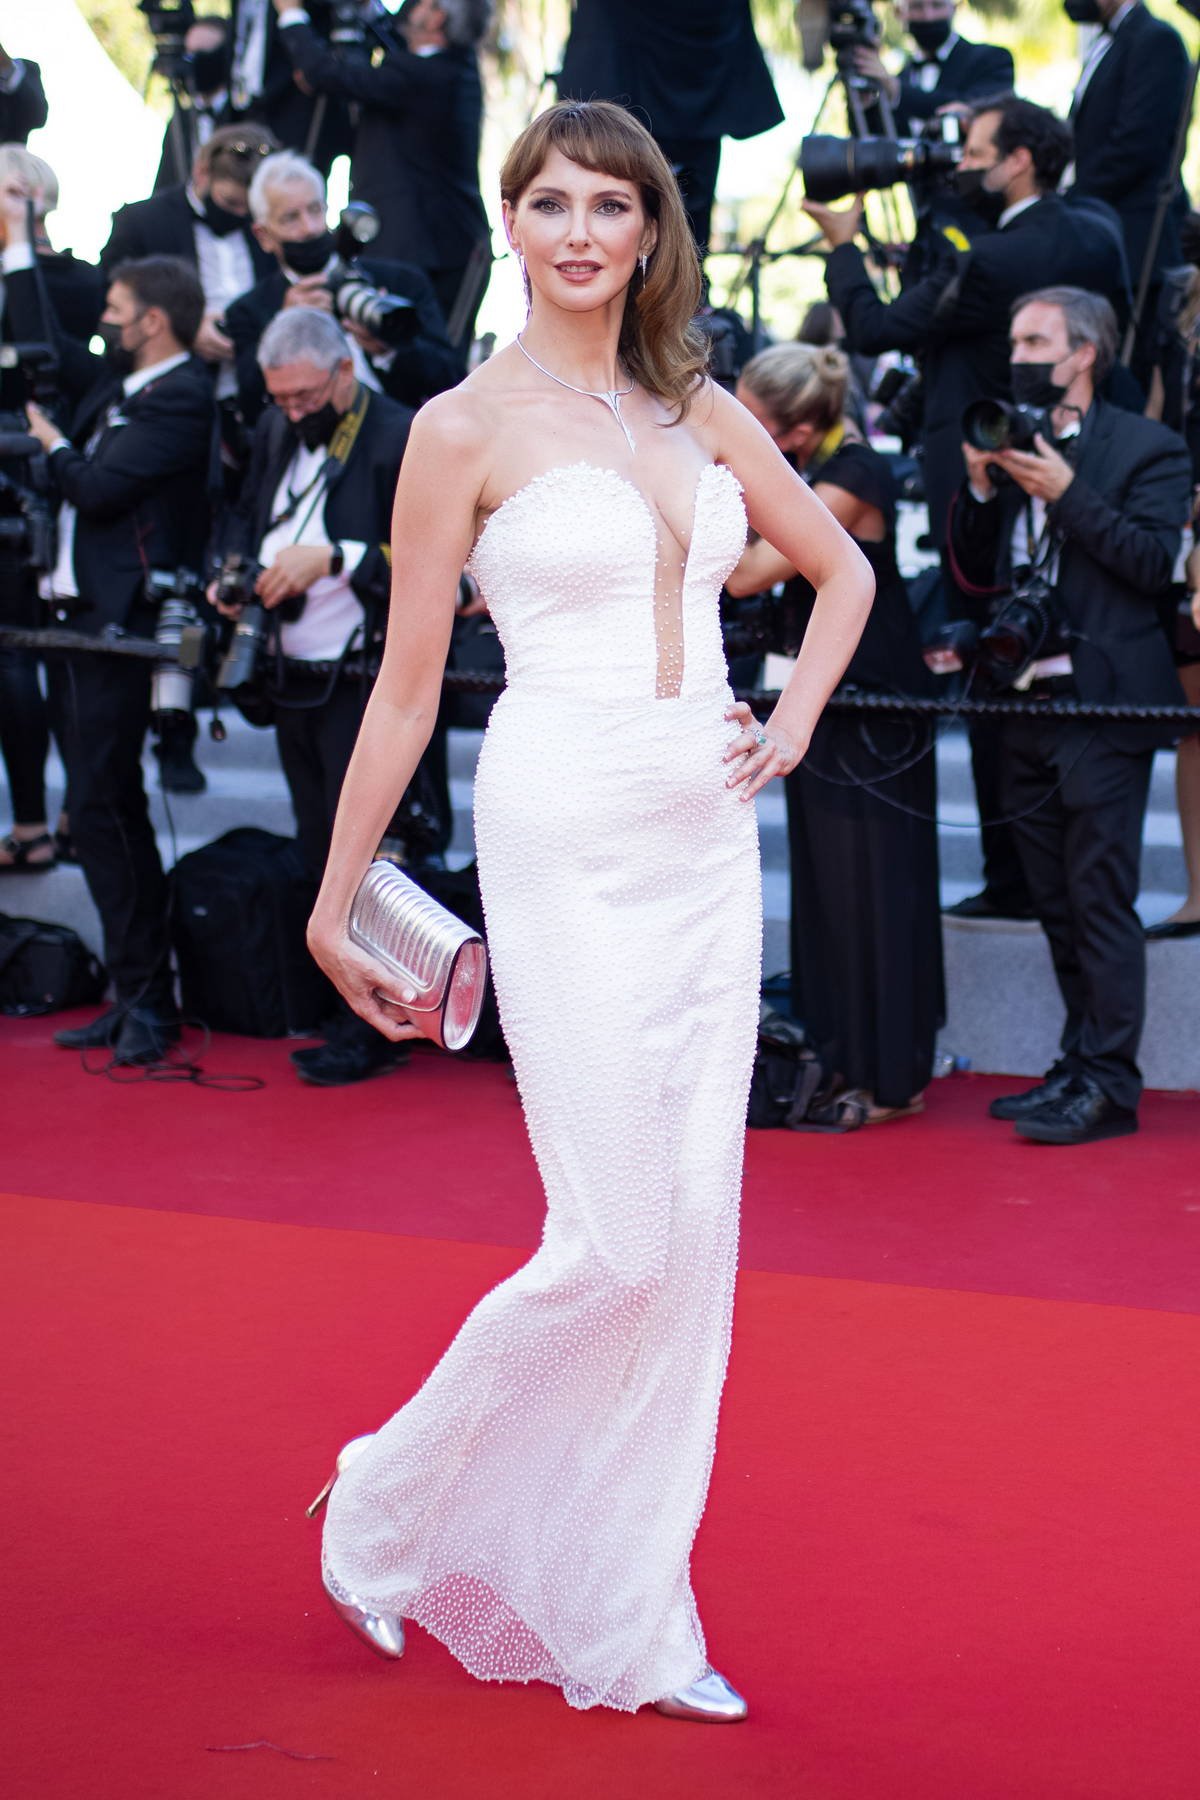 Frederique Bel attends the Premiere of 'Benedetta' during the 74th annual Cannes Film Festival in Cannes, France